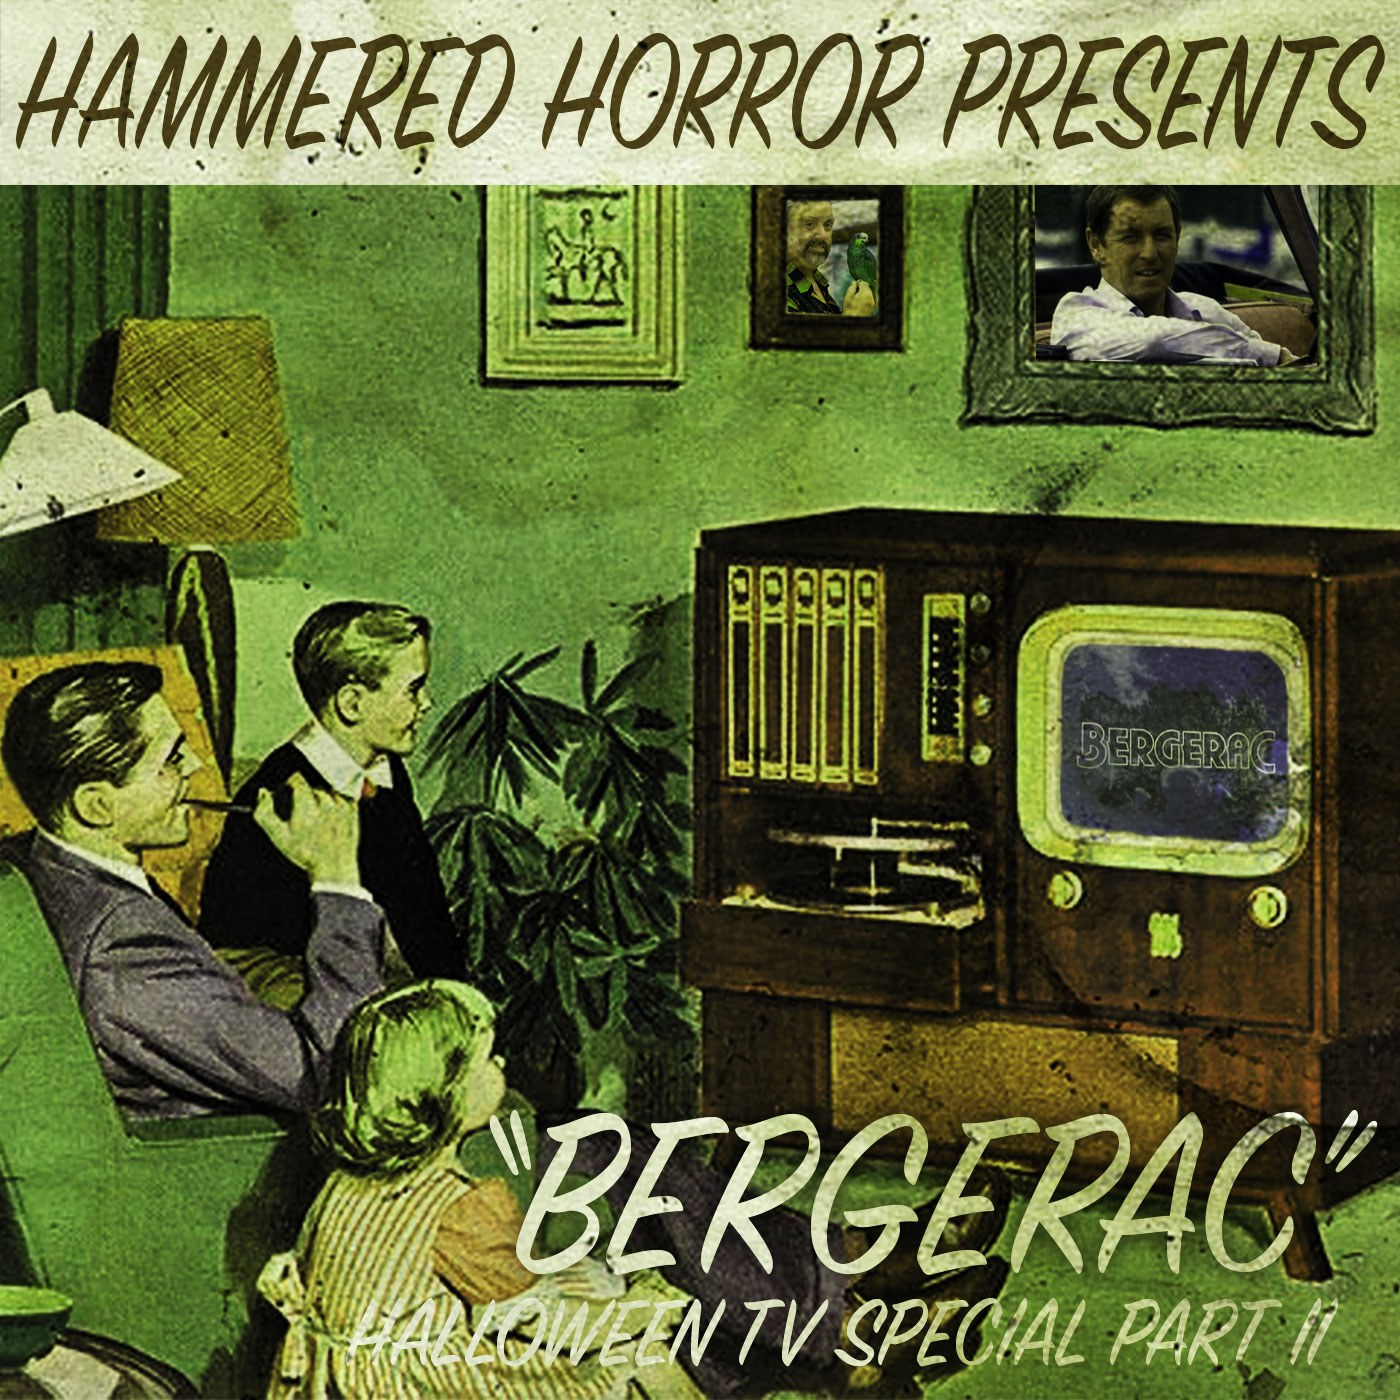 Hammered Horror 38: Bergerac